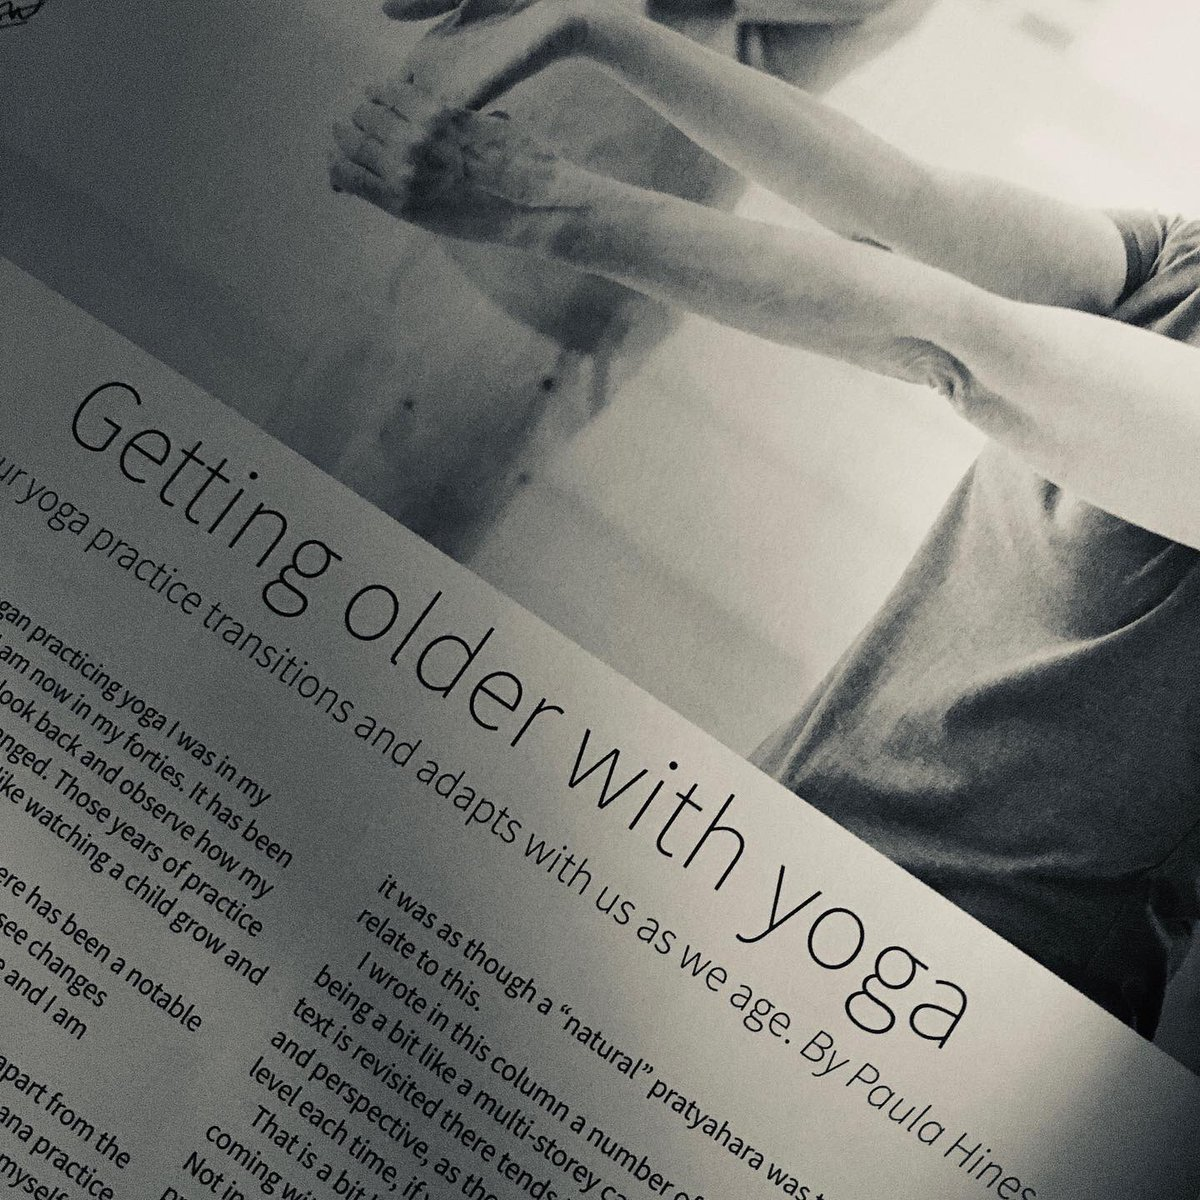 "TRANSITIONS: ""When I began practising yoga I was in my twenties. I am now in my forties. It has been intriguing to look back and observe how my practice has changed."" In the December issue of @OMYogaMagazine I write about peri-menopause, getting older … http://instagram.com/p/B55GorHn6uO/ …"